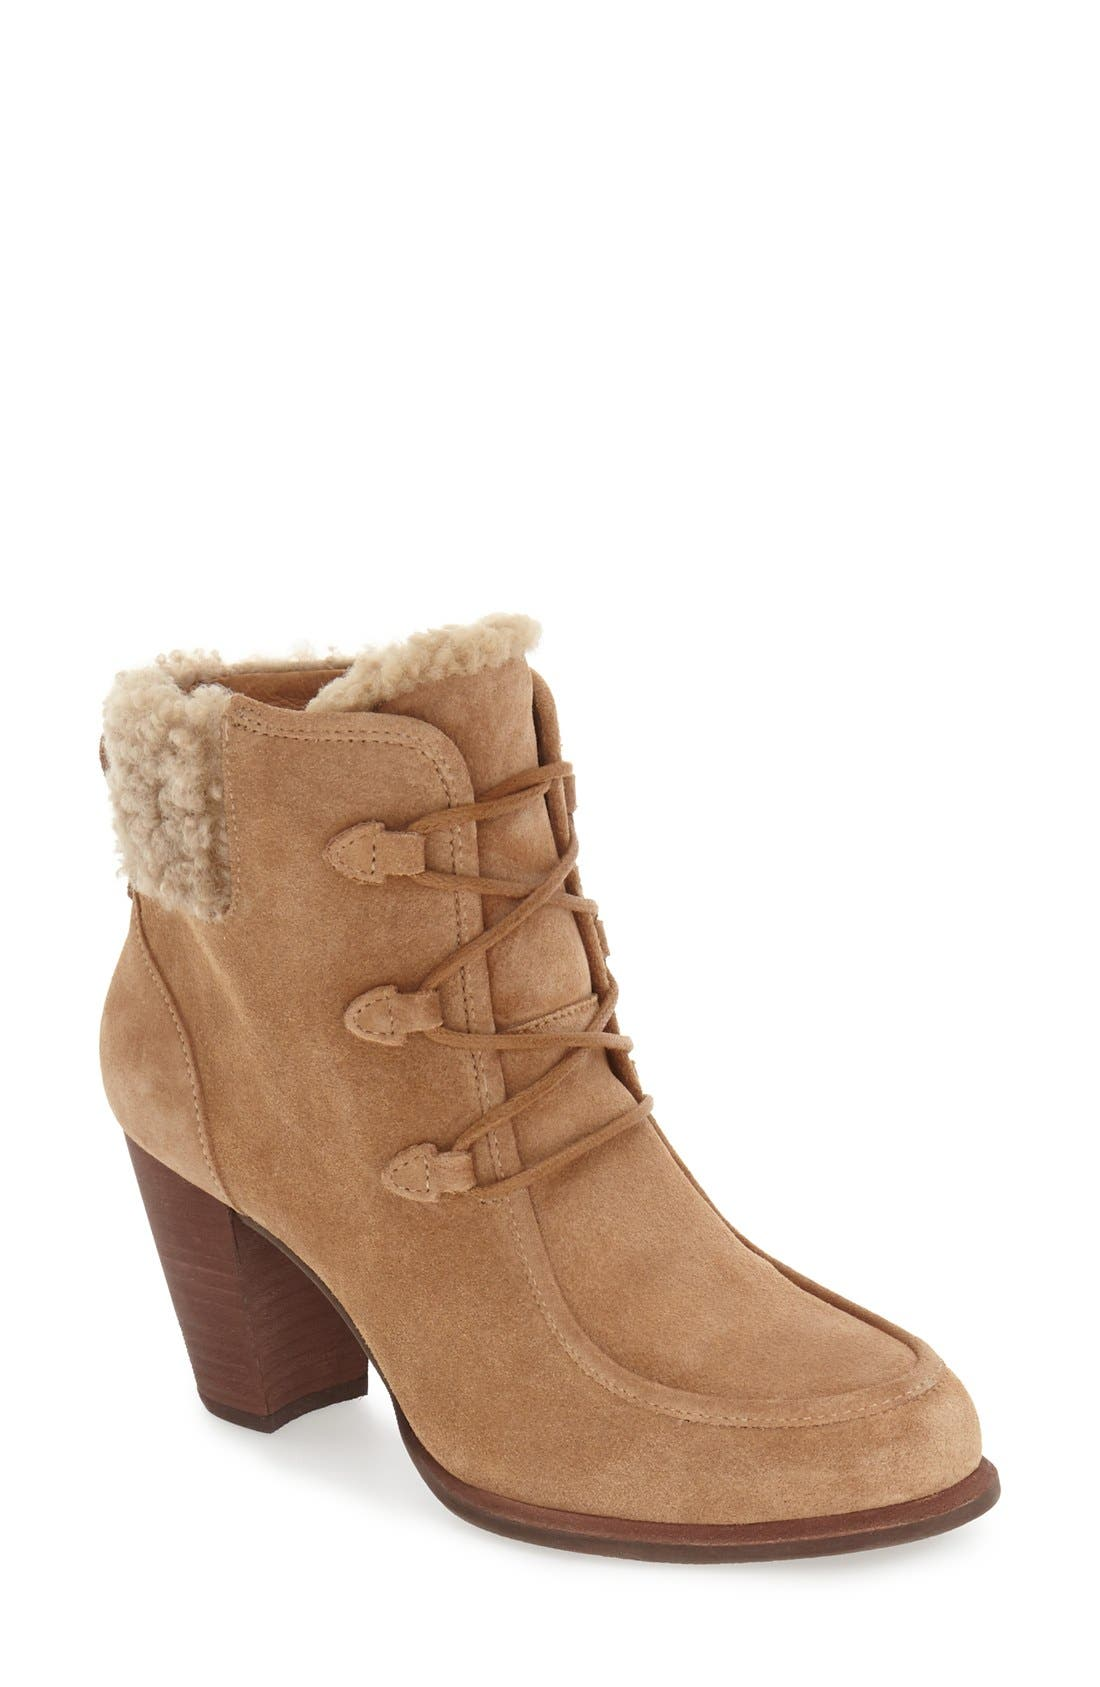 Alternate Image 1 Selected - UGG® Australia 'Analise' Hiker Bootie (Women)